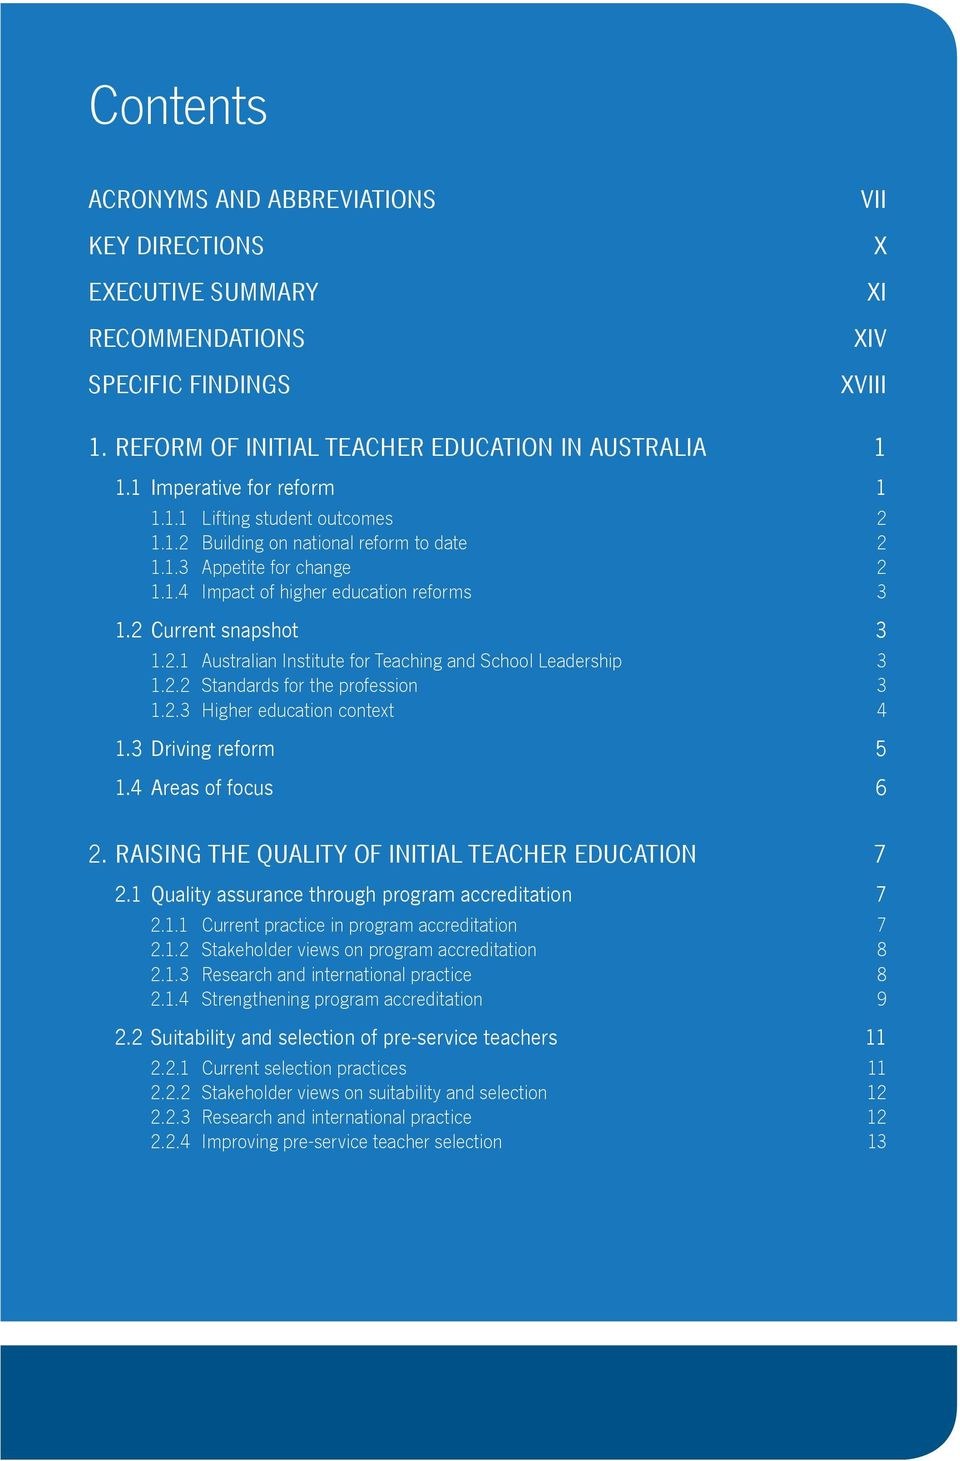 2.1 Australian Institute for Teaching and School Leadership 3 1.2.2 Standards for the profession 3 1.2.3 Higher education context 4 1.3 Driving reform 5 1.4 Areas of focus 6 2.